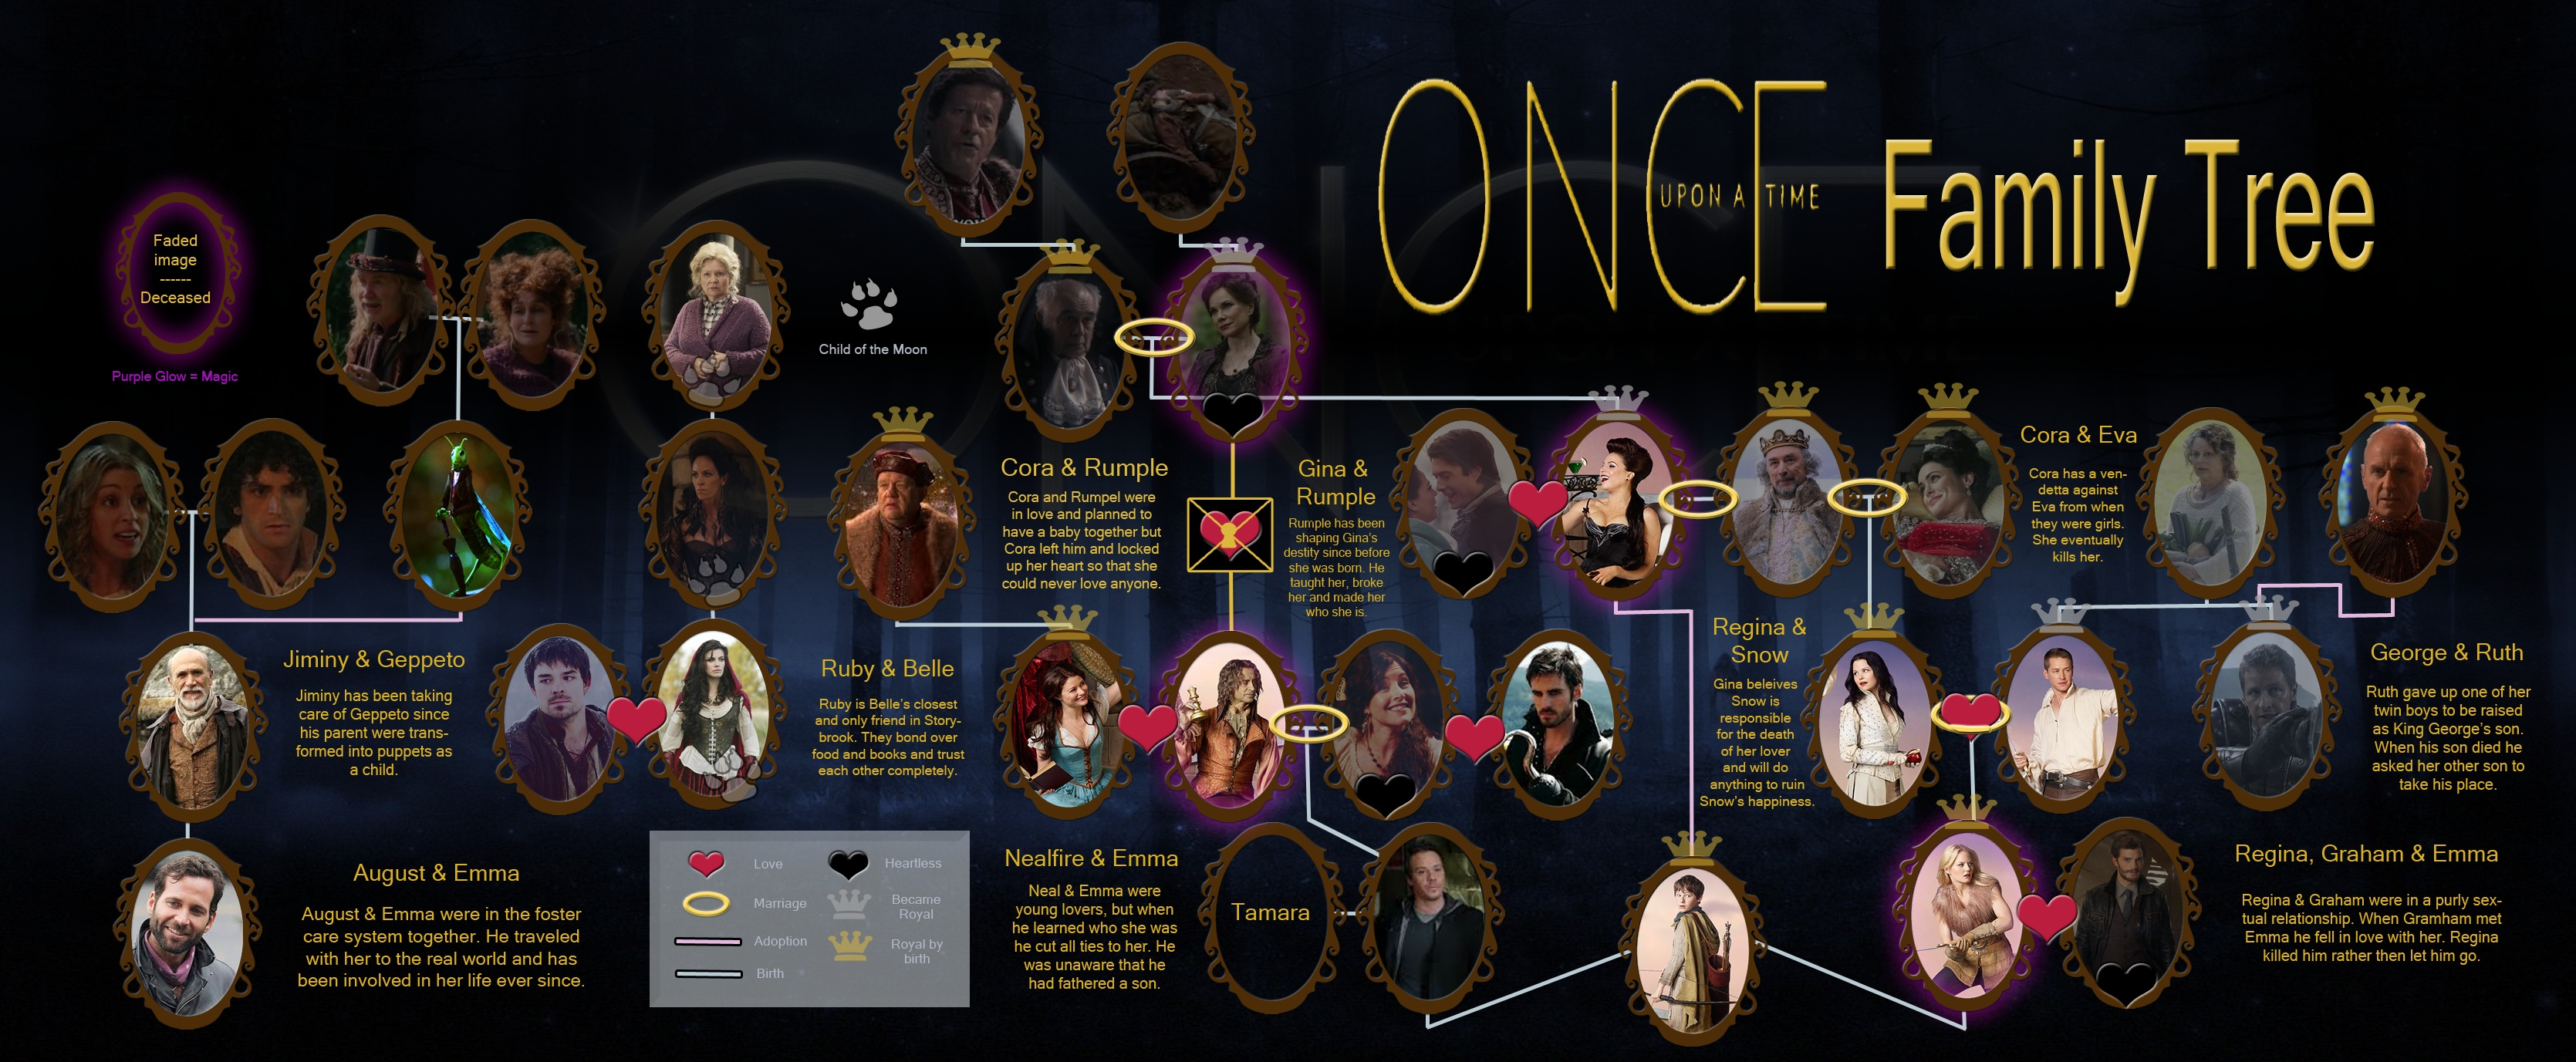 OUAT Family Tree : OnceUponATime